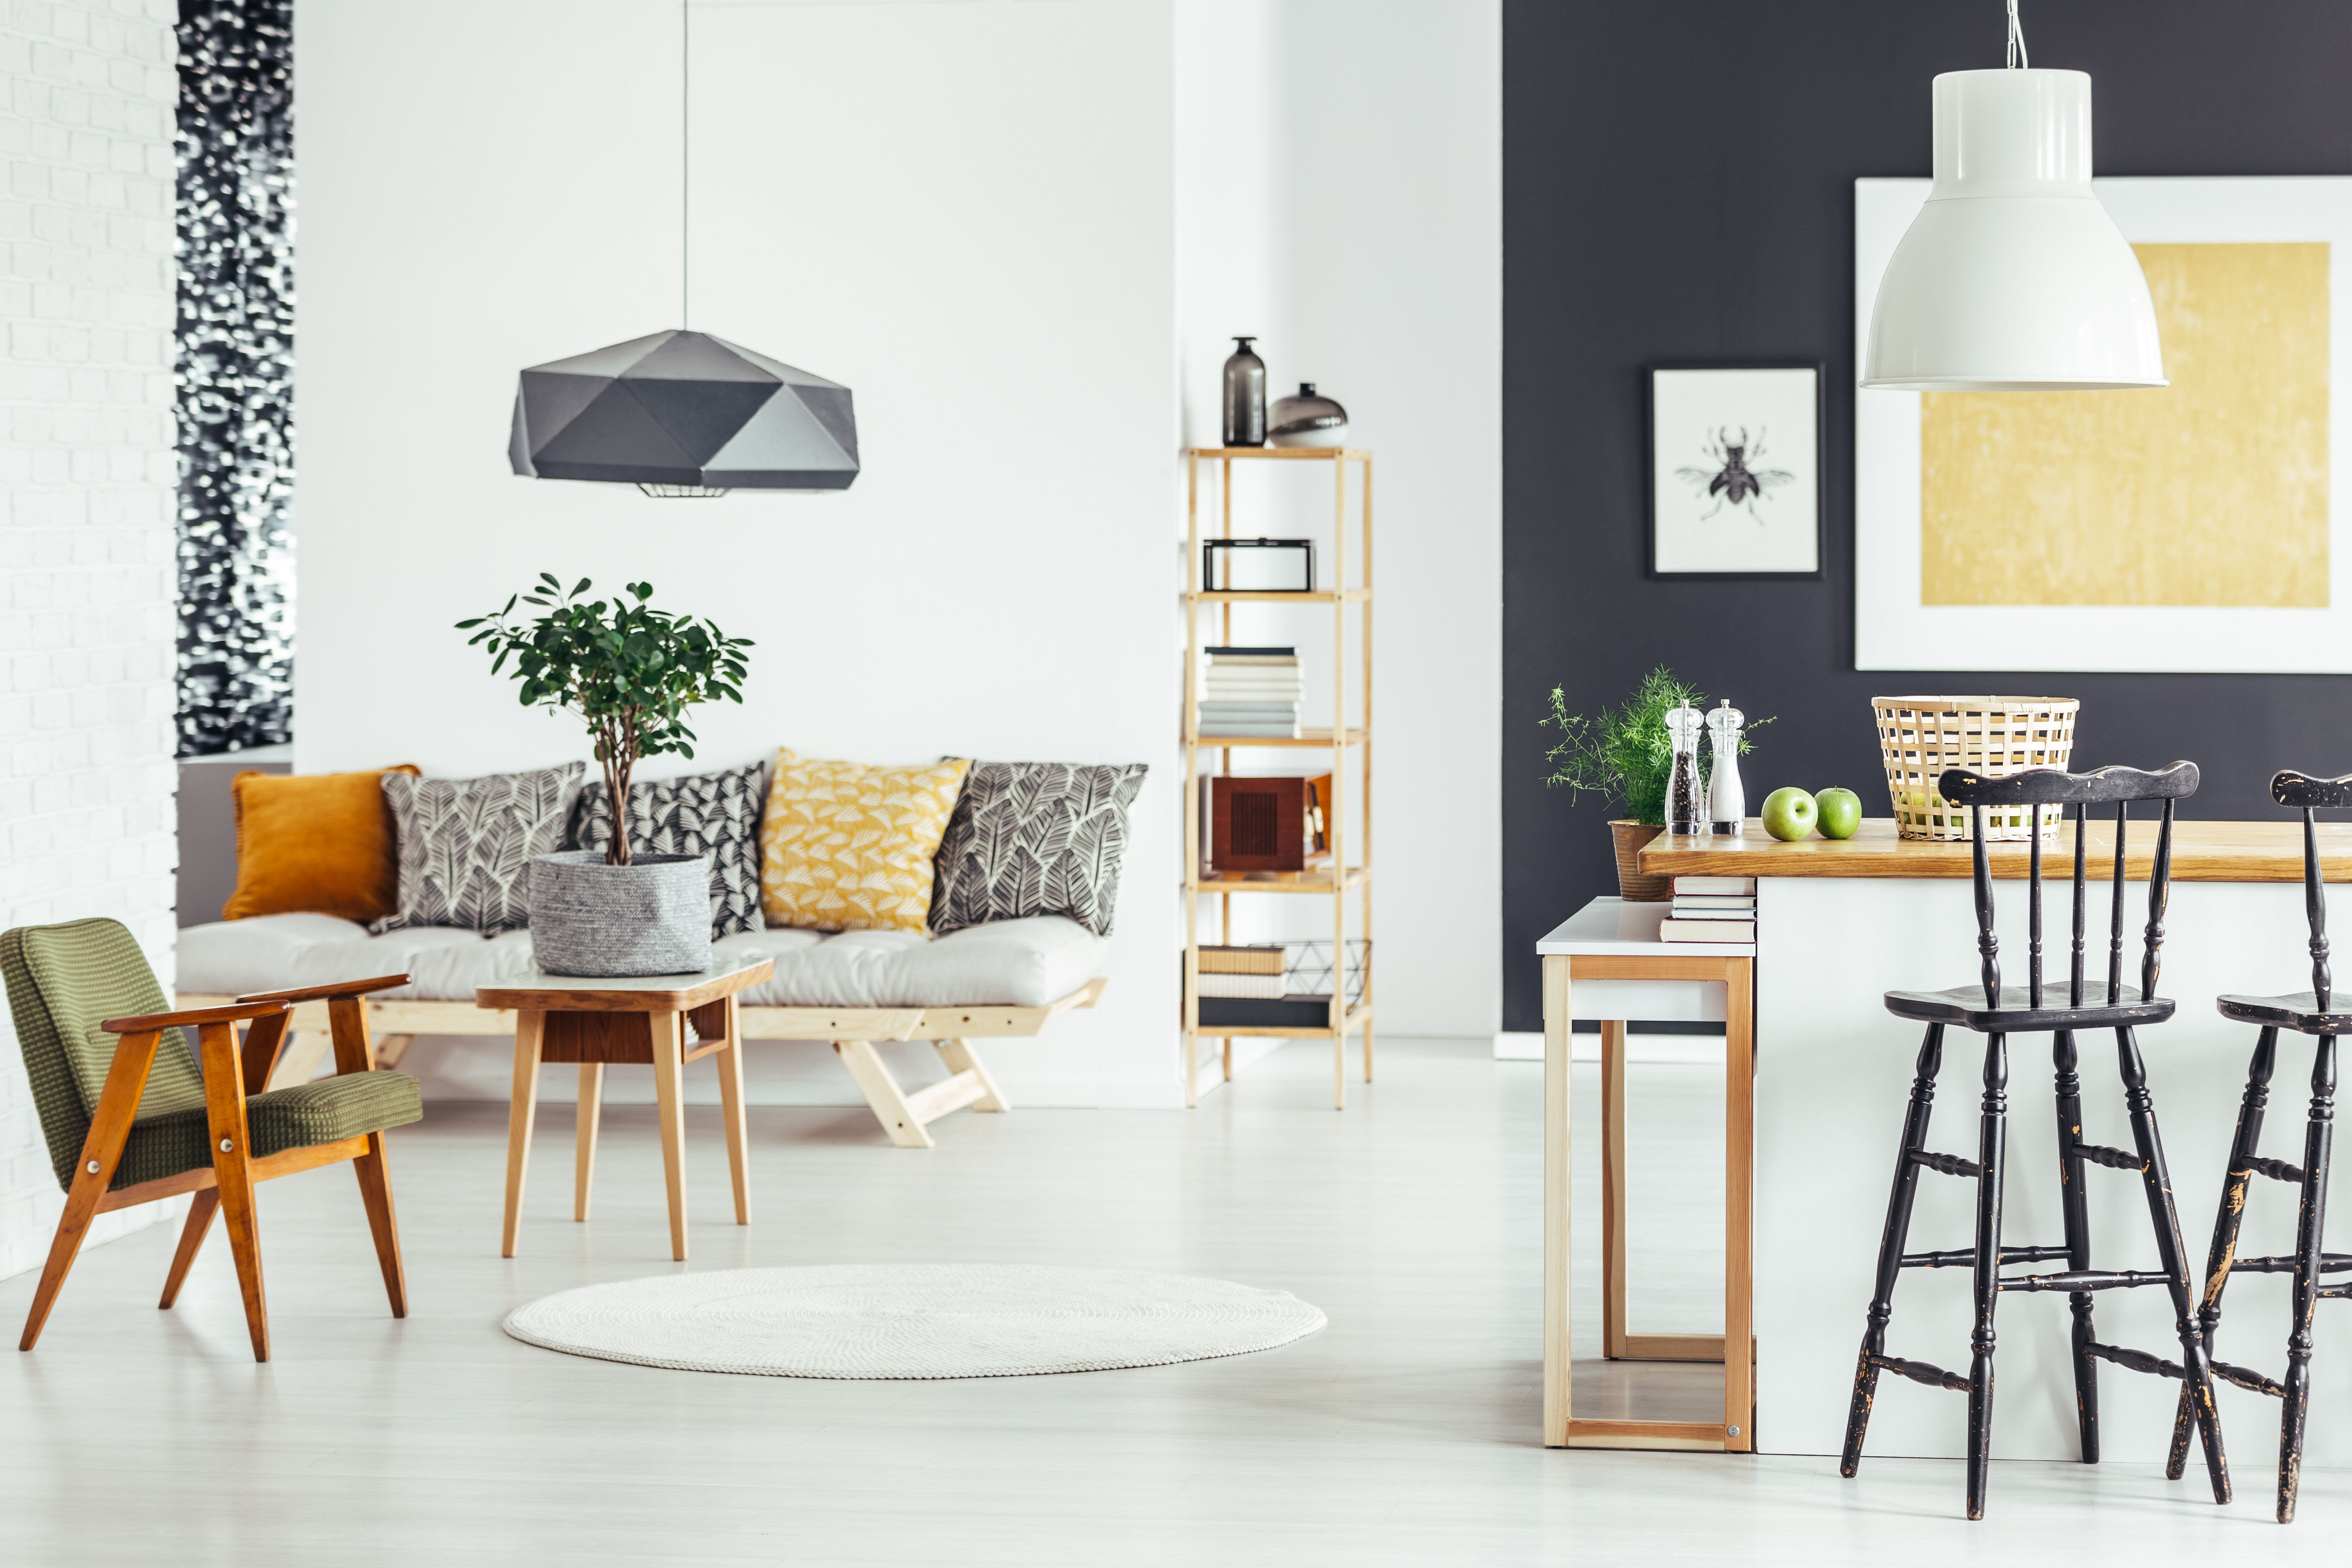 The 42 Best Websites For Furniture And Decor That Make Decorating Easy |  HuffPost Life